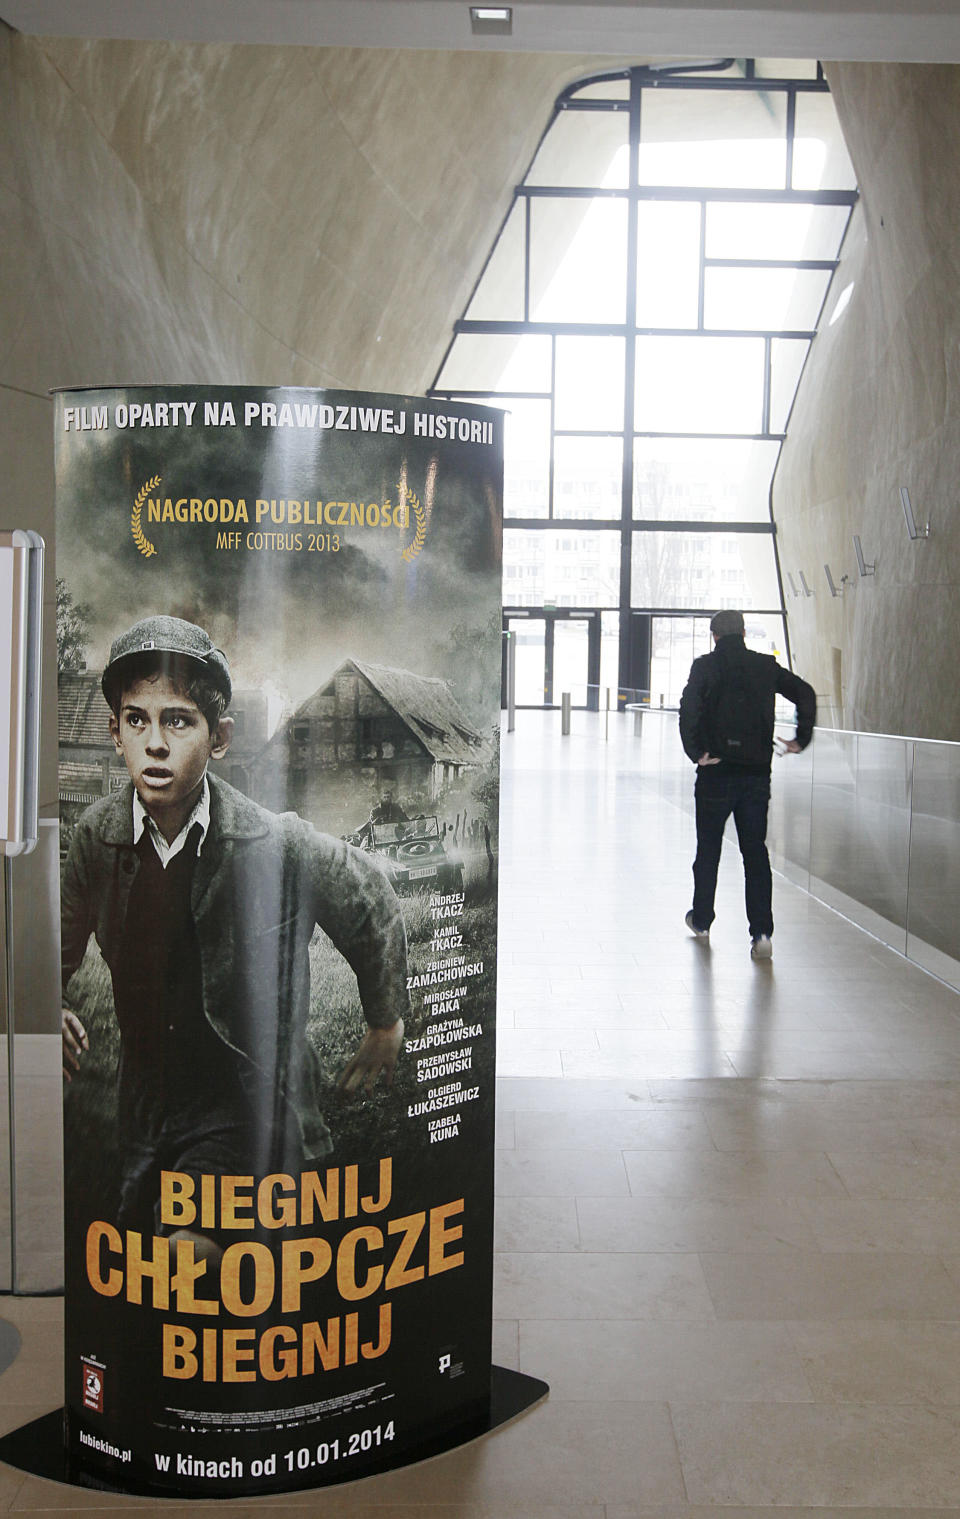 """Posters advertising the movie """"Run, Boy, Run"""" are displayed at the Museum of the History of Polish Jews prior to the world premiere of the movie by German Oscar-winning director Pepe Danquart about a Jewish boy struggling to survive the Holocaust, in Warsaw, Poland, Wednesday, Jan. 8, 2014. The movie is based on a true story of 10-year-old Yoram Friedman who escaped the Warsaw ghetto in 1943 and, hunted by the Nazis, hid in the woods near the city. (AP Photo/Czarek Sokolowski)"""